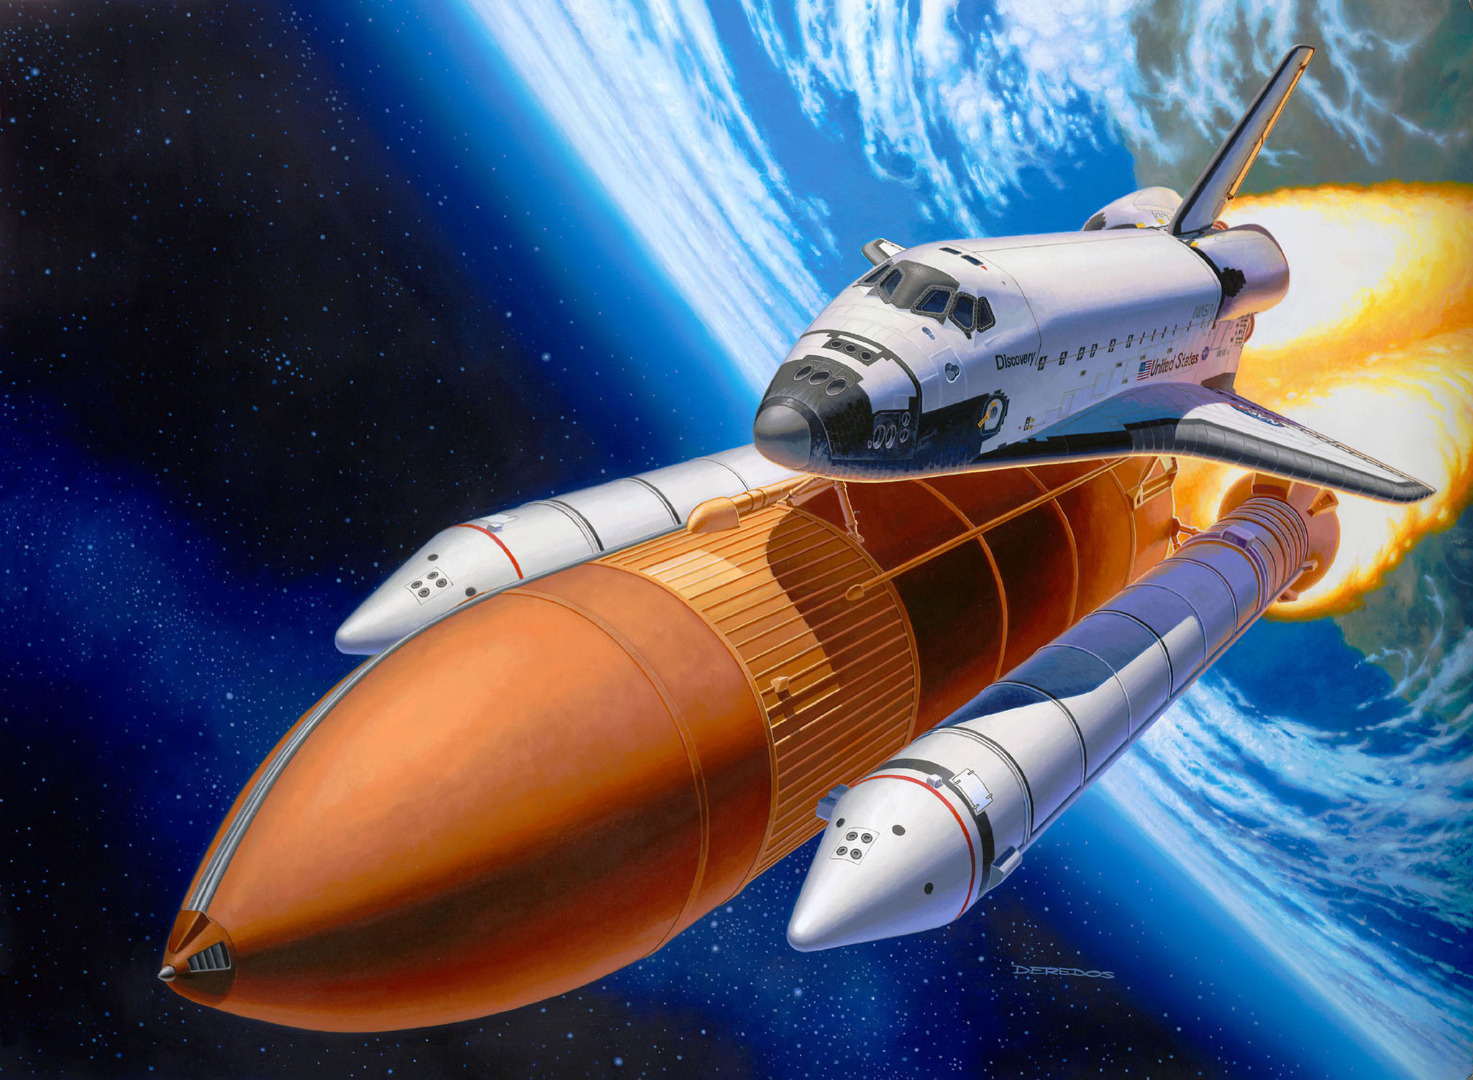 Revell Model Kit Space Shuttle Discovery + Booster Rockets Scale 1:144